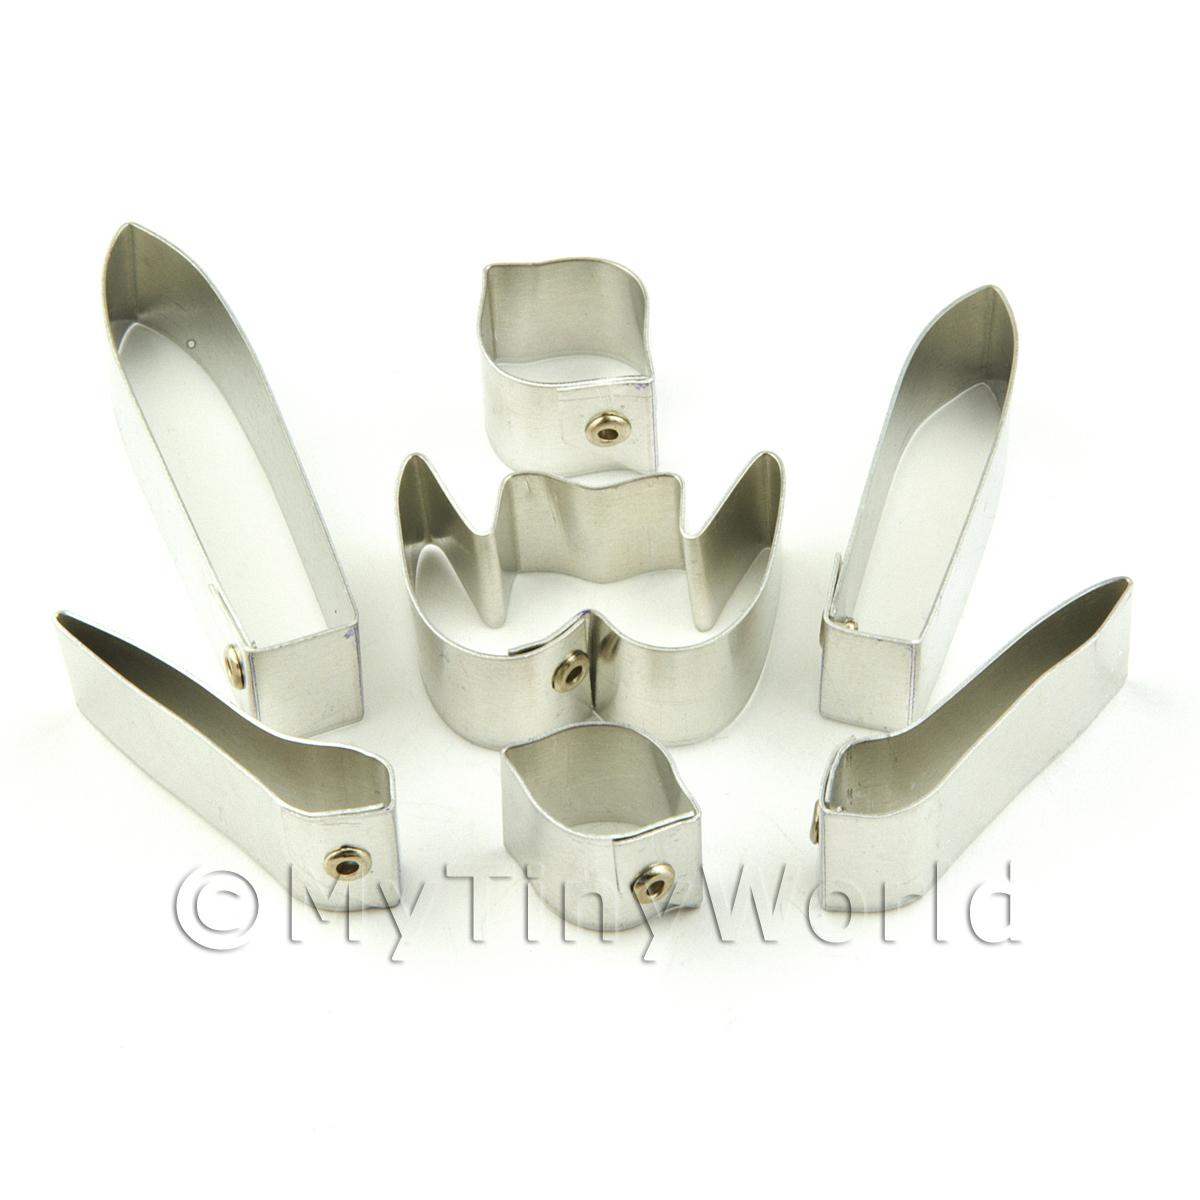 Set of 7 Metal Ladys Slipper Parish Orchid Craft Cutters